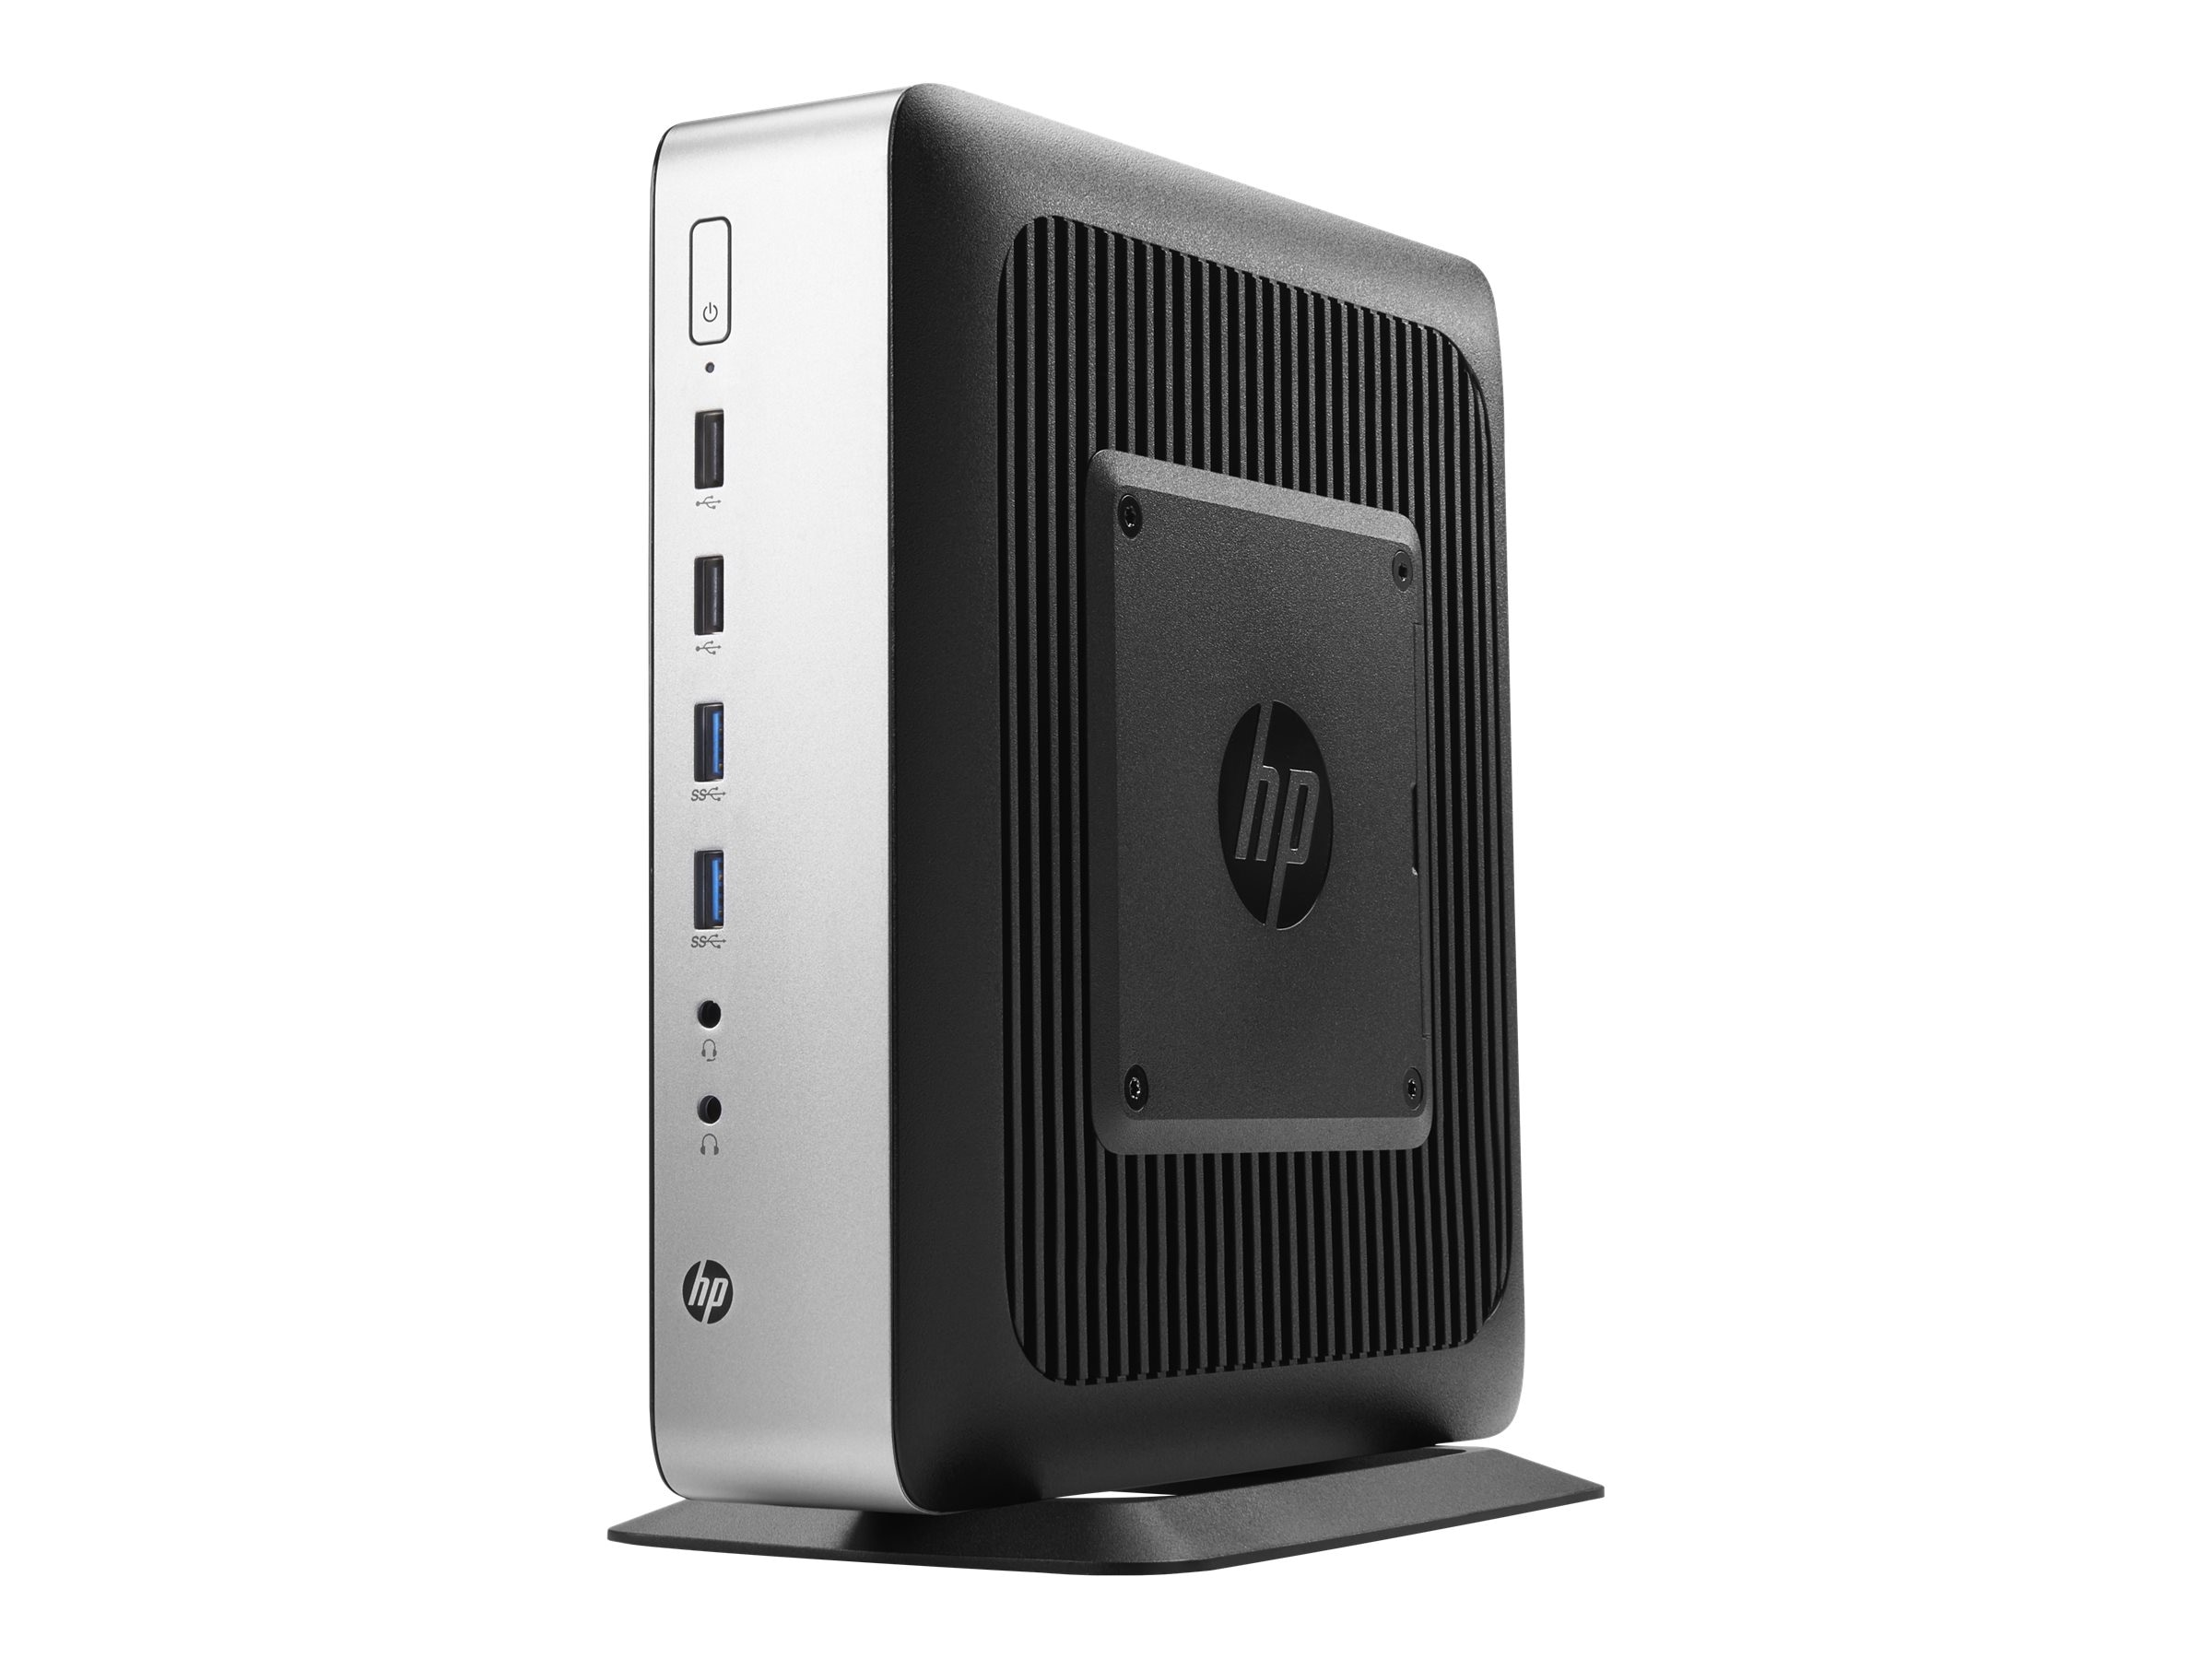 HP t730 Thin Client AMD RX-427BB 2.7GHz 8GB 32GB Flash W2100 GbE WES7P, P5V92UT#ABA, 30886084, Thin Client Hardware